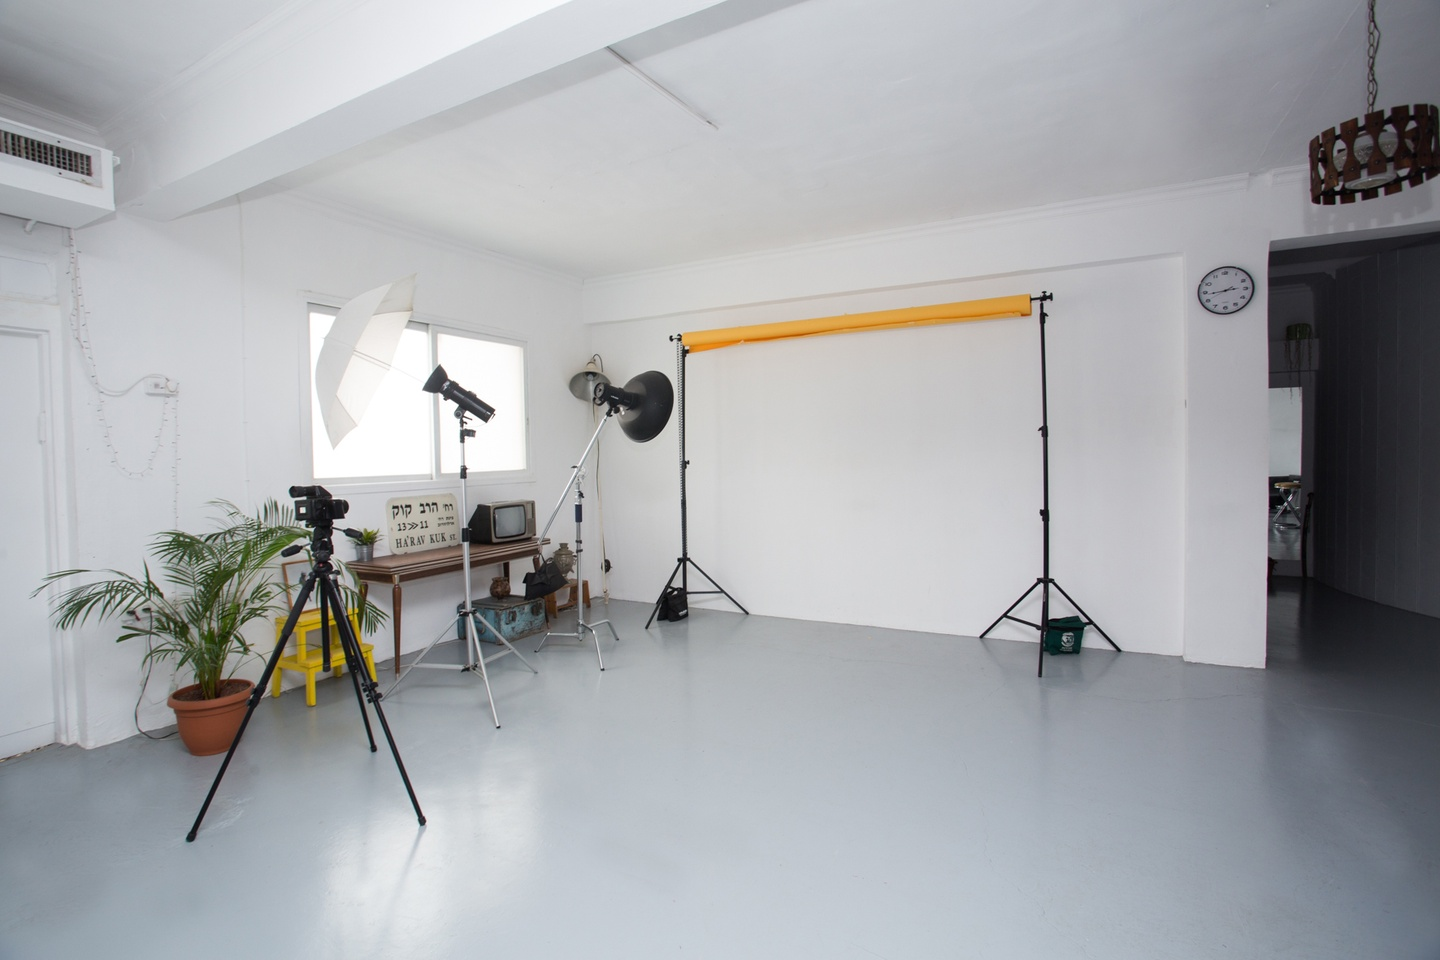 Tel Aviv workshop spaces Salle de réunion Spacious  photographers loft for events and meetings image 2